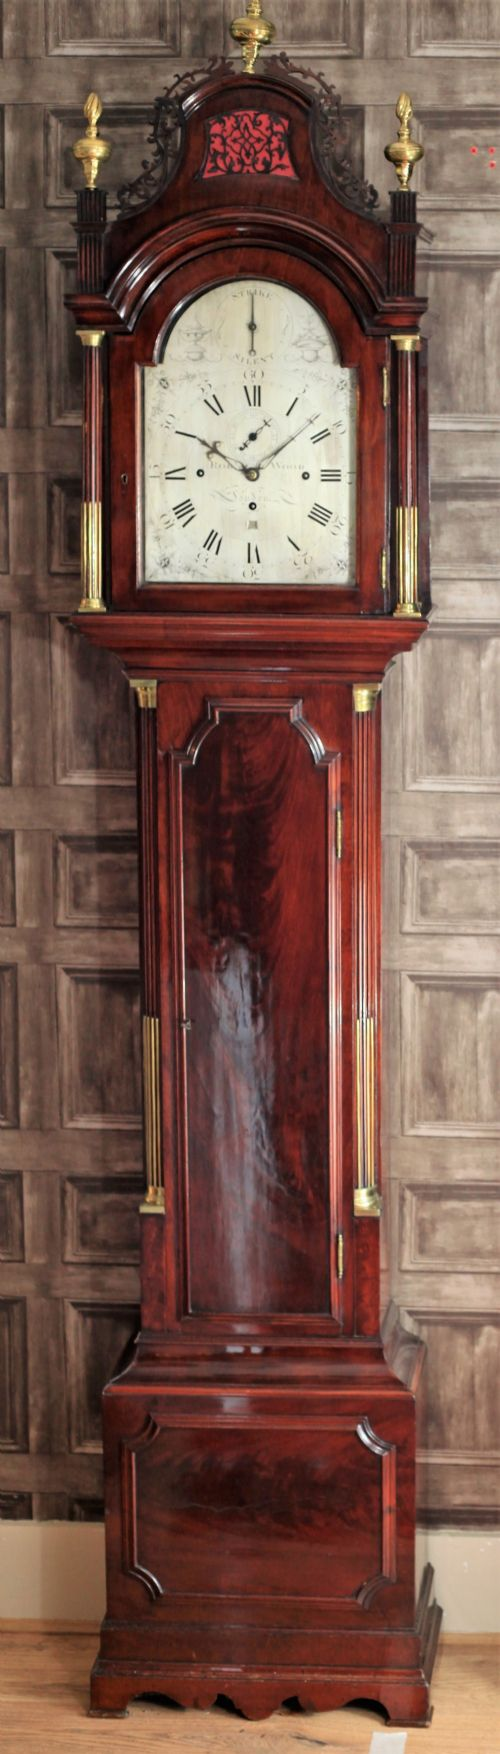 a fine quality flame mahogany 8 bell quarter chiming london pagoda longcase clock by robert wood 17851810